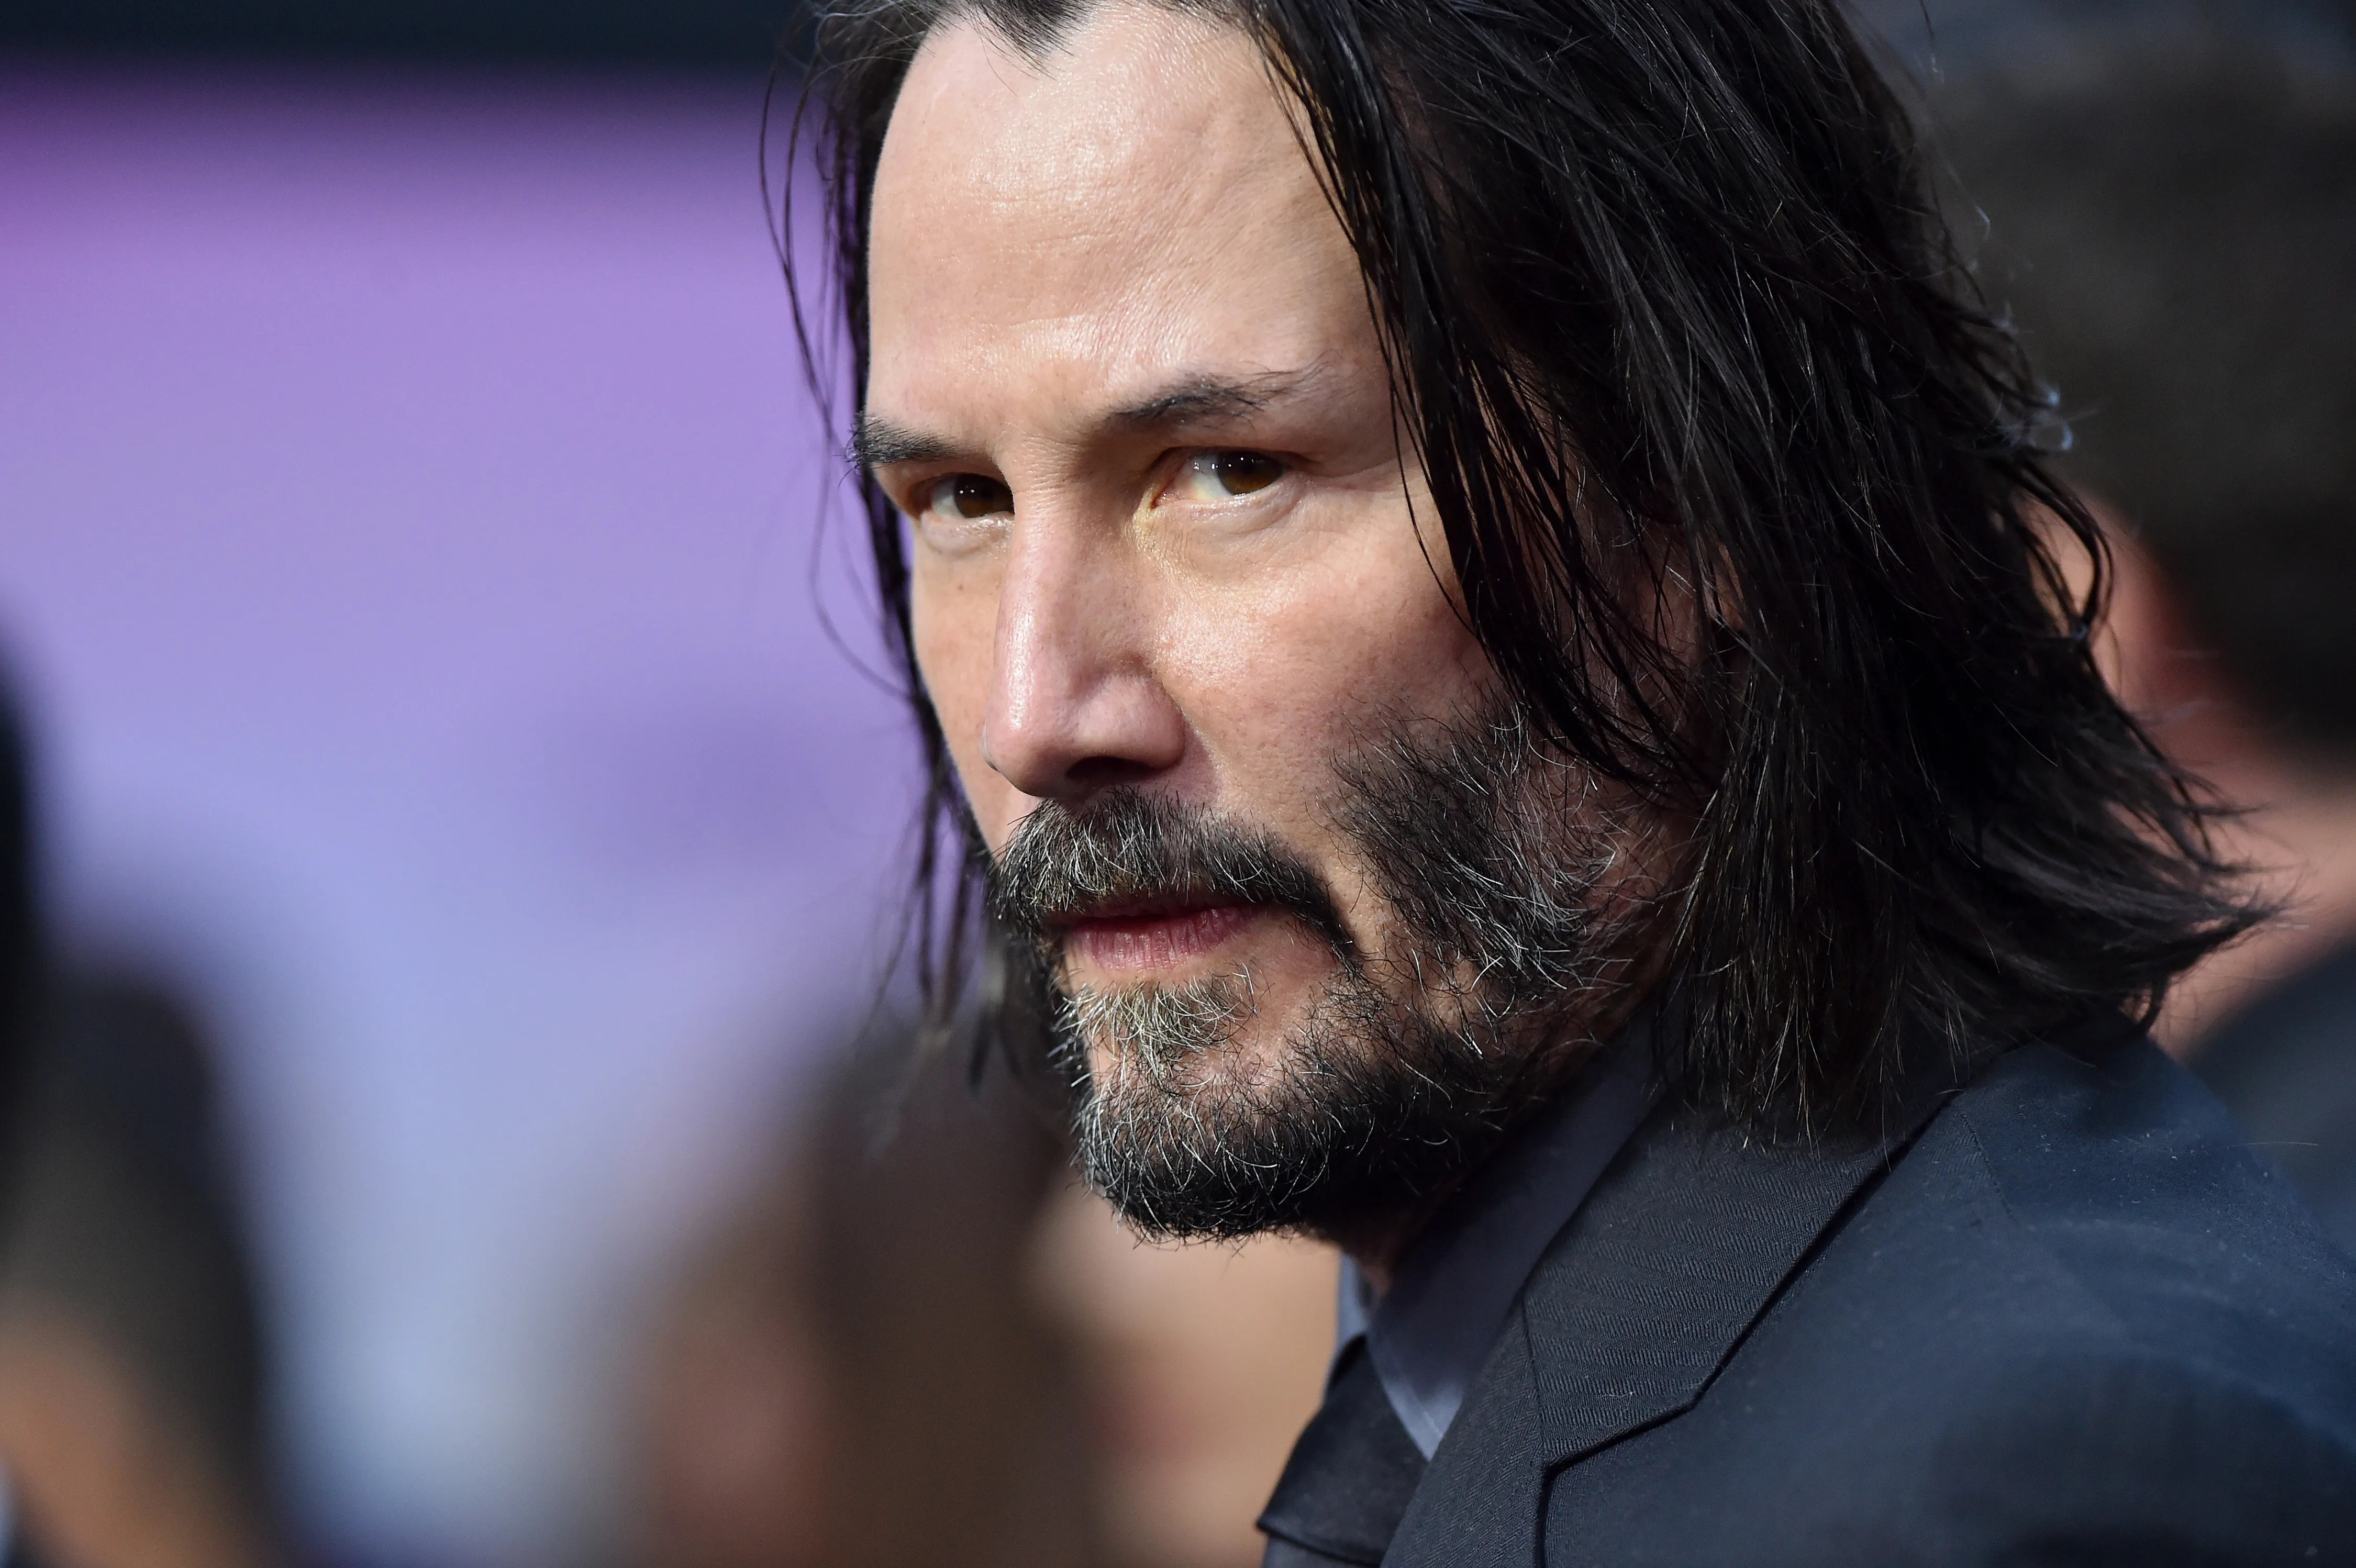 Keanu Reeves Pulls A Keanu Move Greets Fans You Re